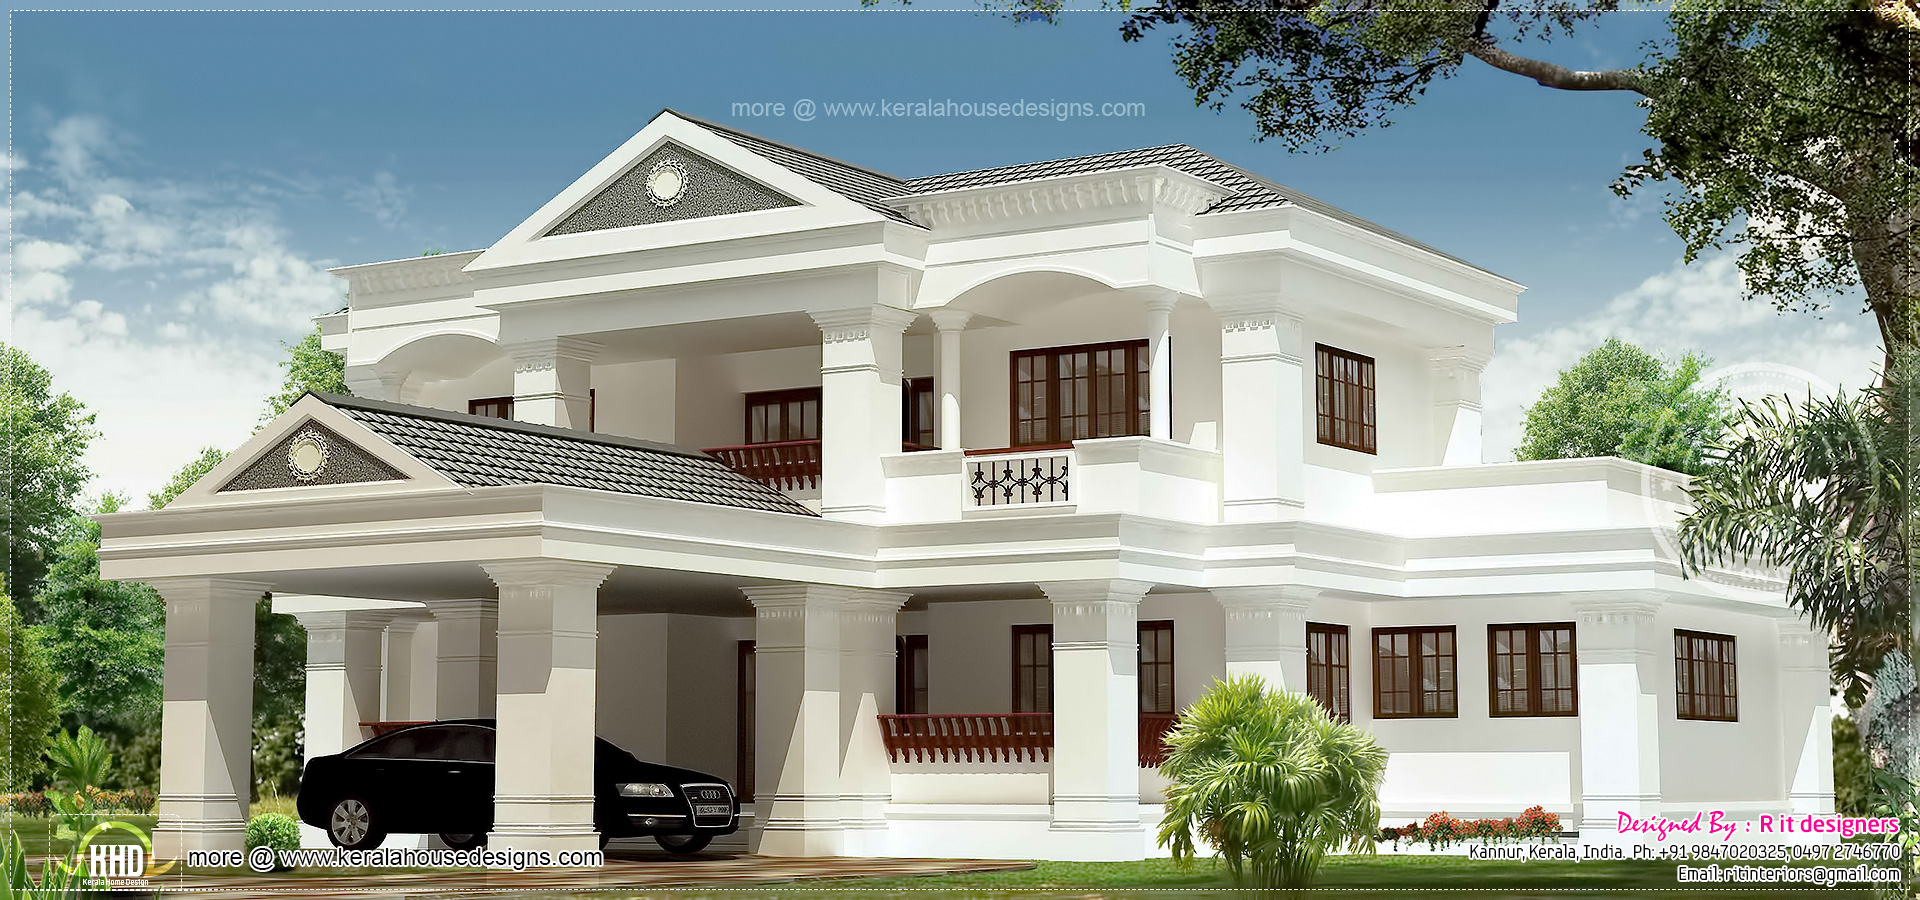 3100 luxury 5 bhk villa exterior kerala home Villa designs india